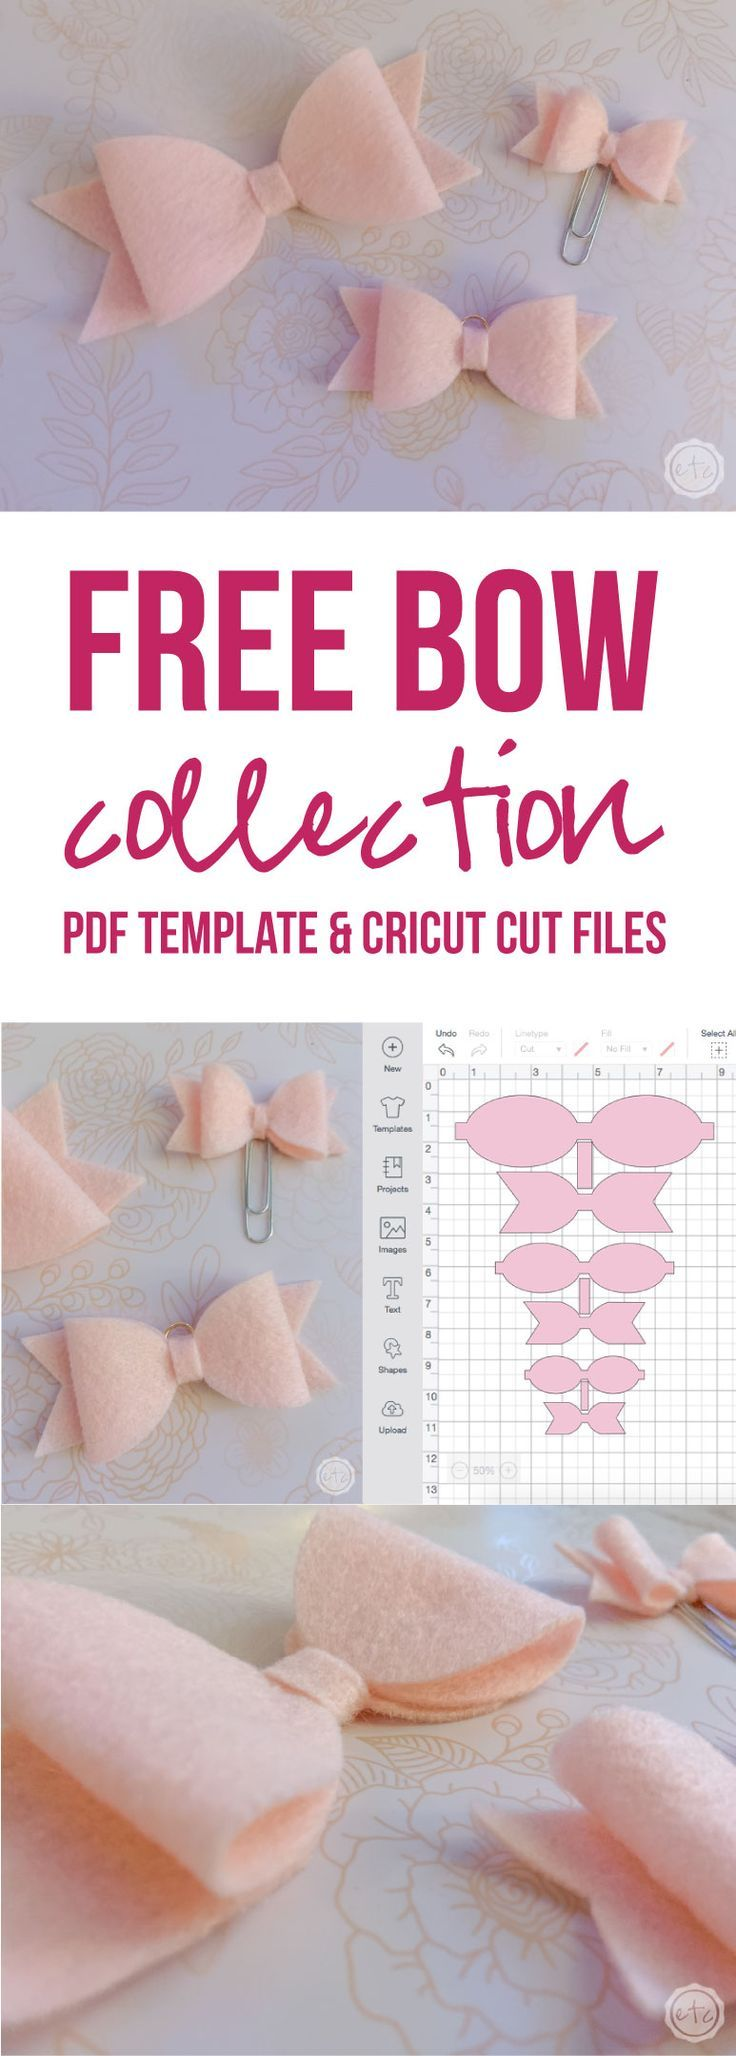 Get Your FREE Felt Bow Cut Files